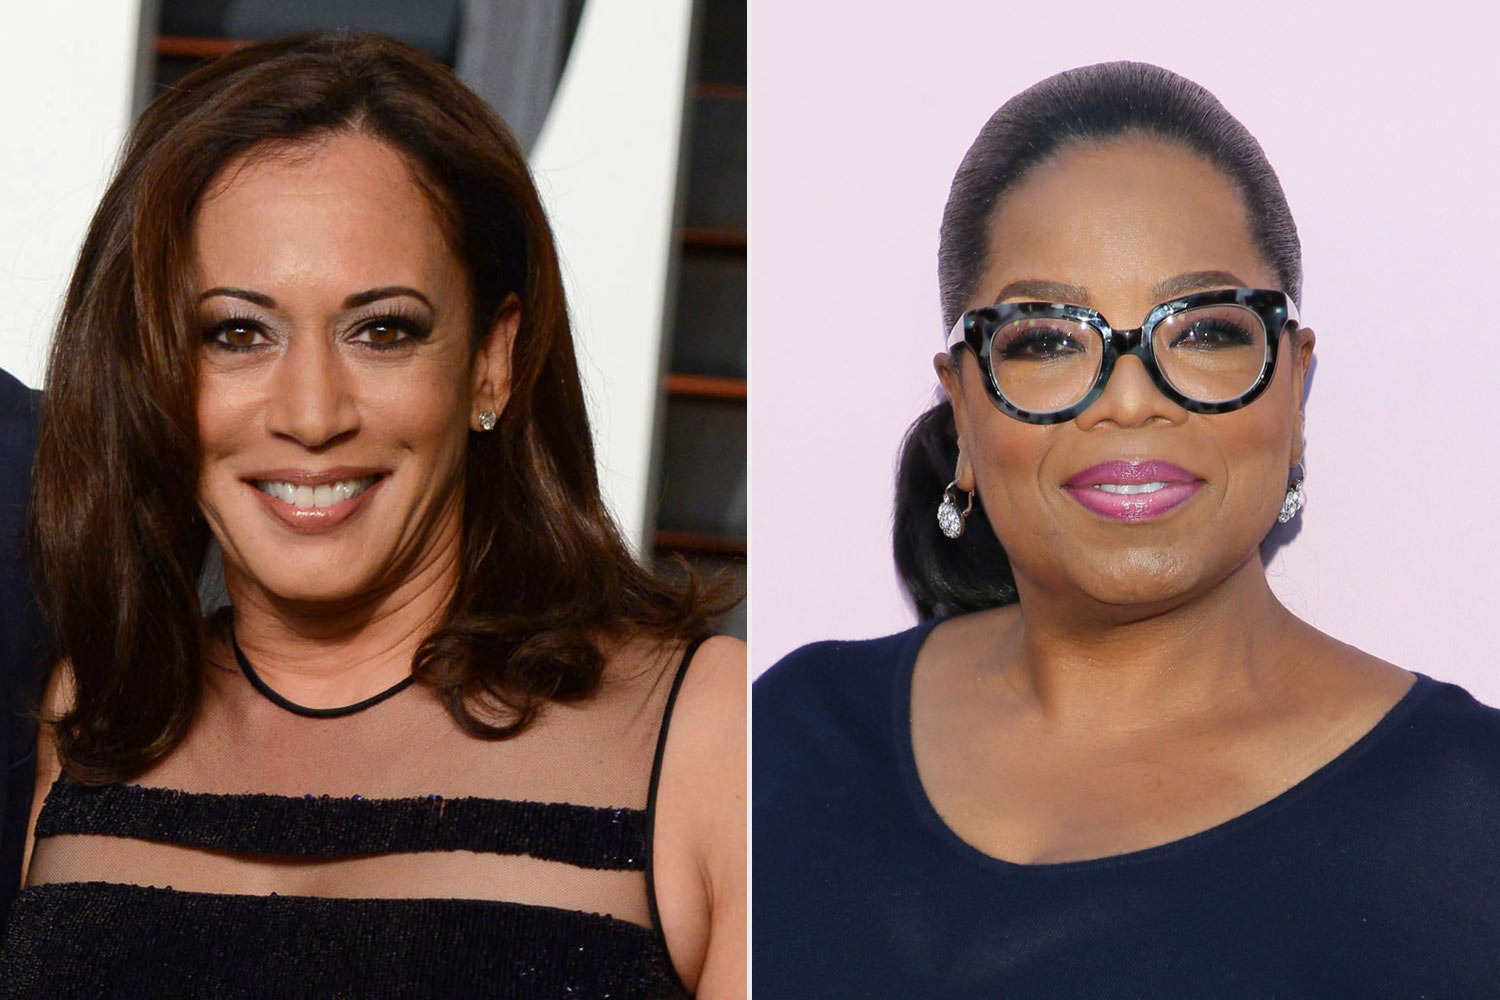 Kamala Harris and Oprah